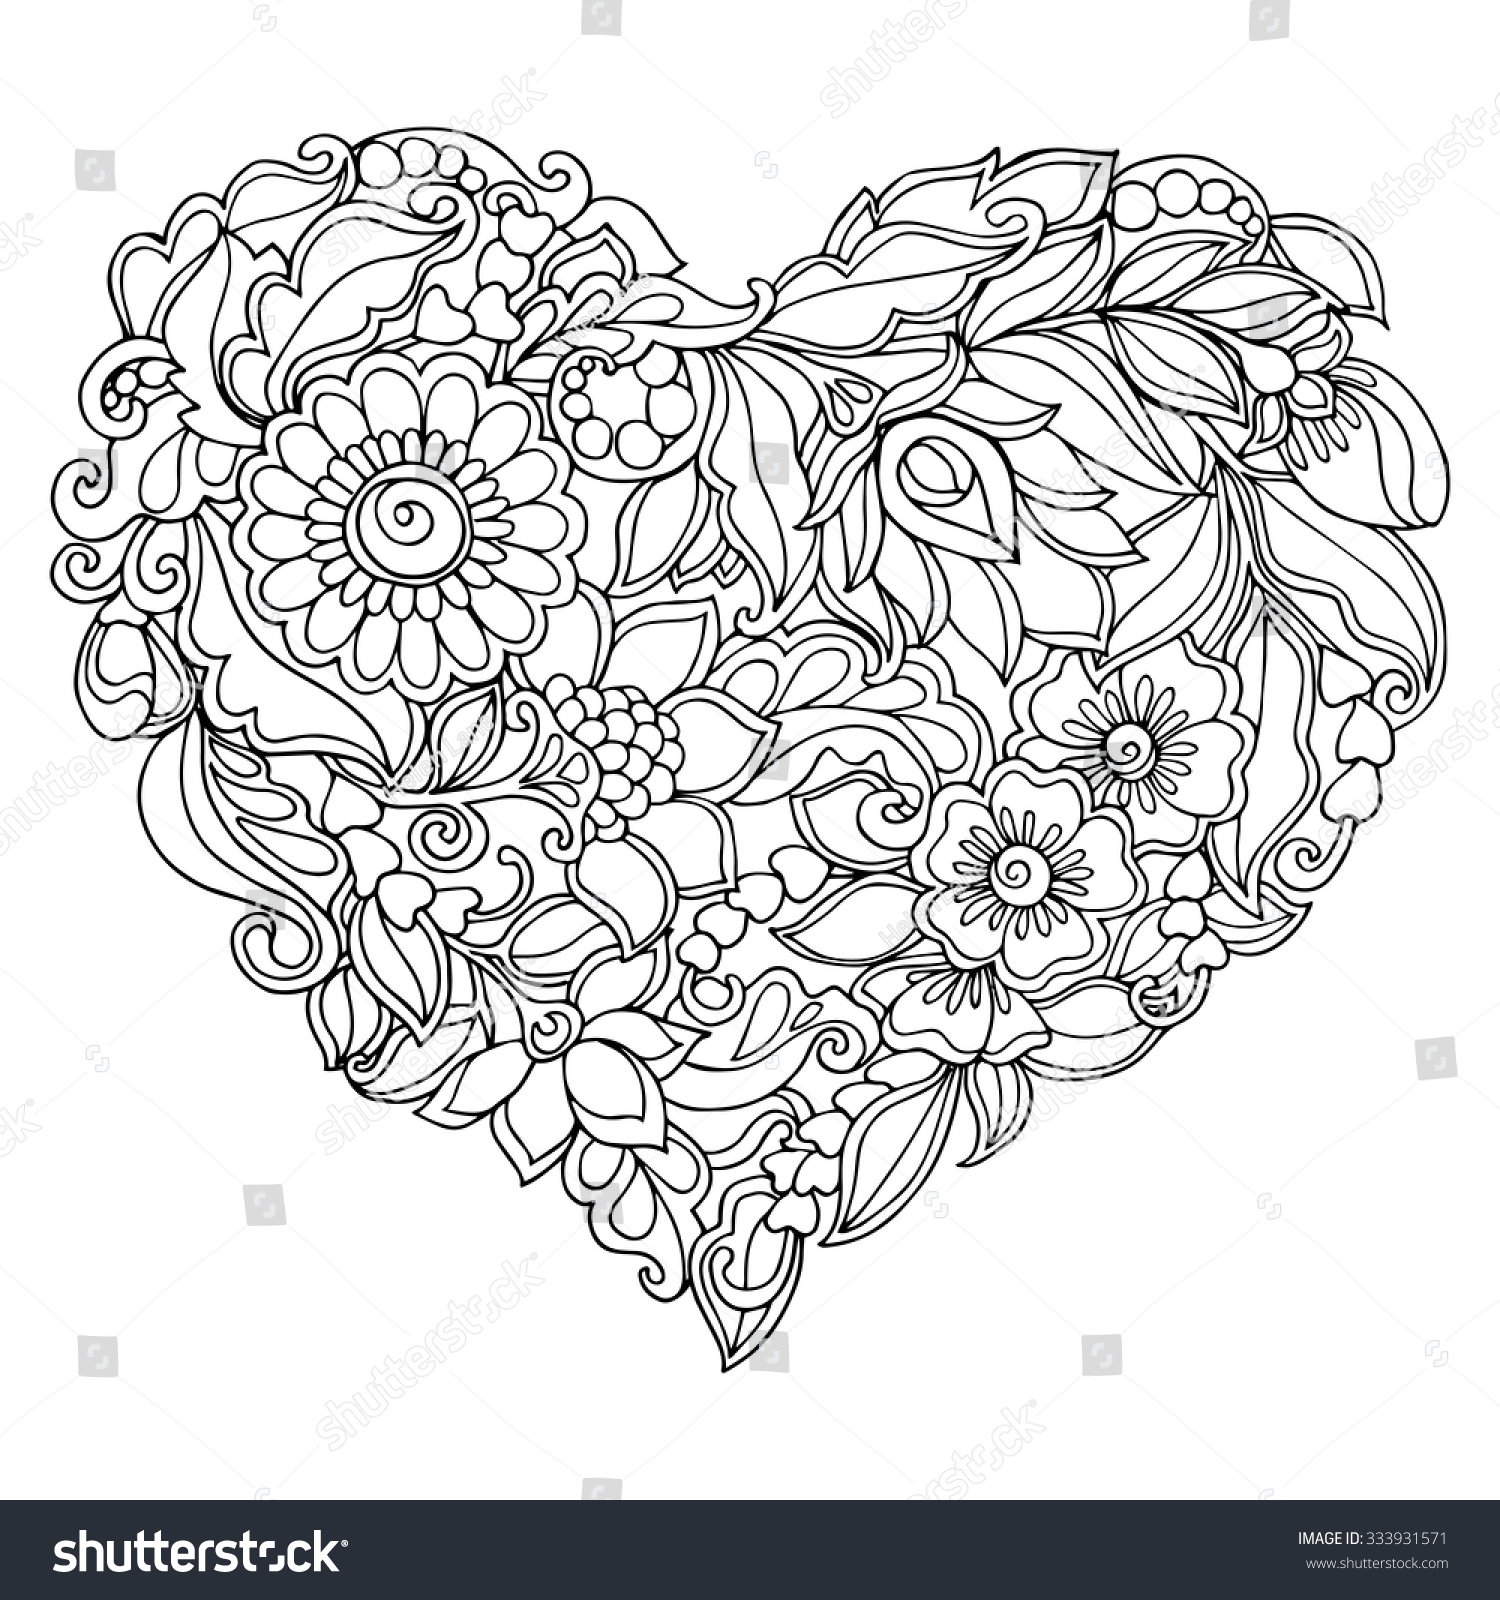 Colorama Coloring Books Coloring Coloring Pages